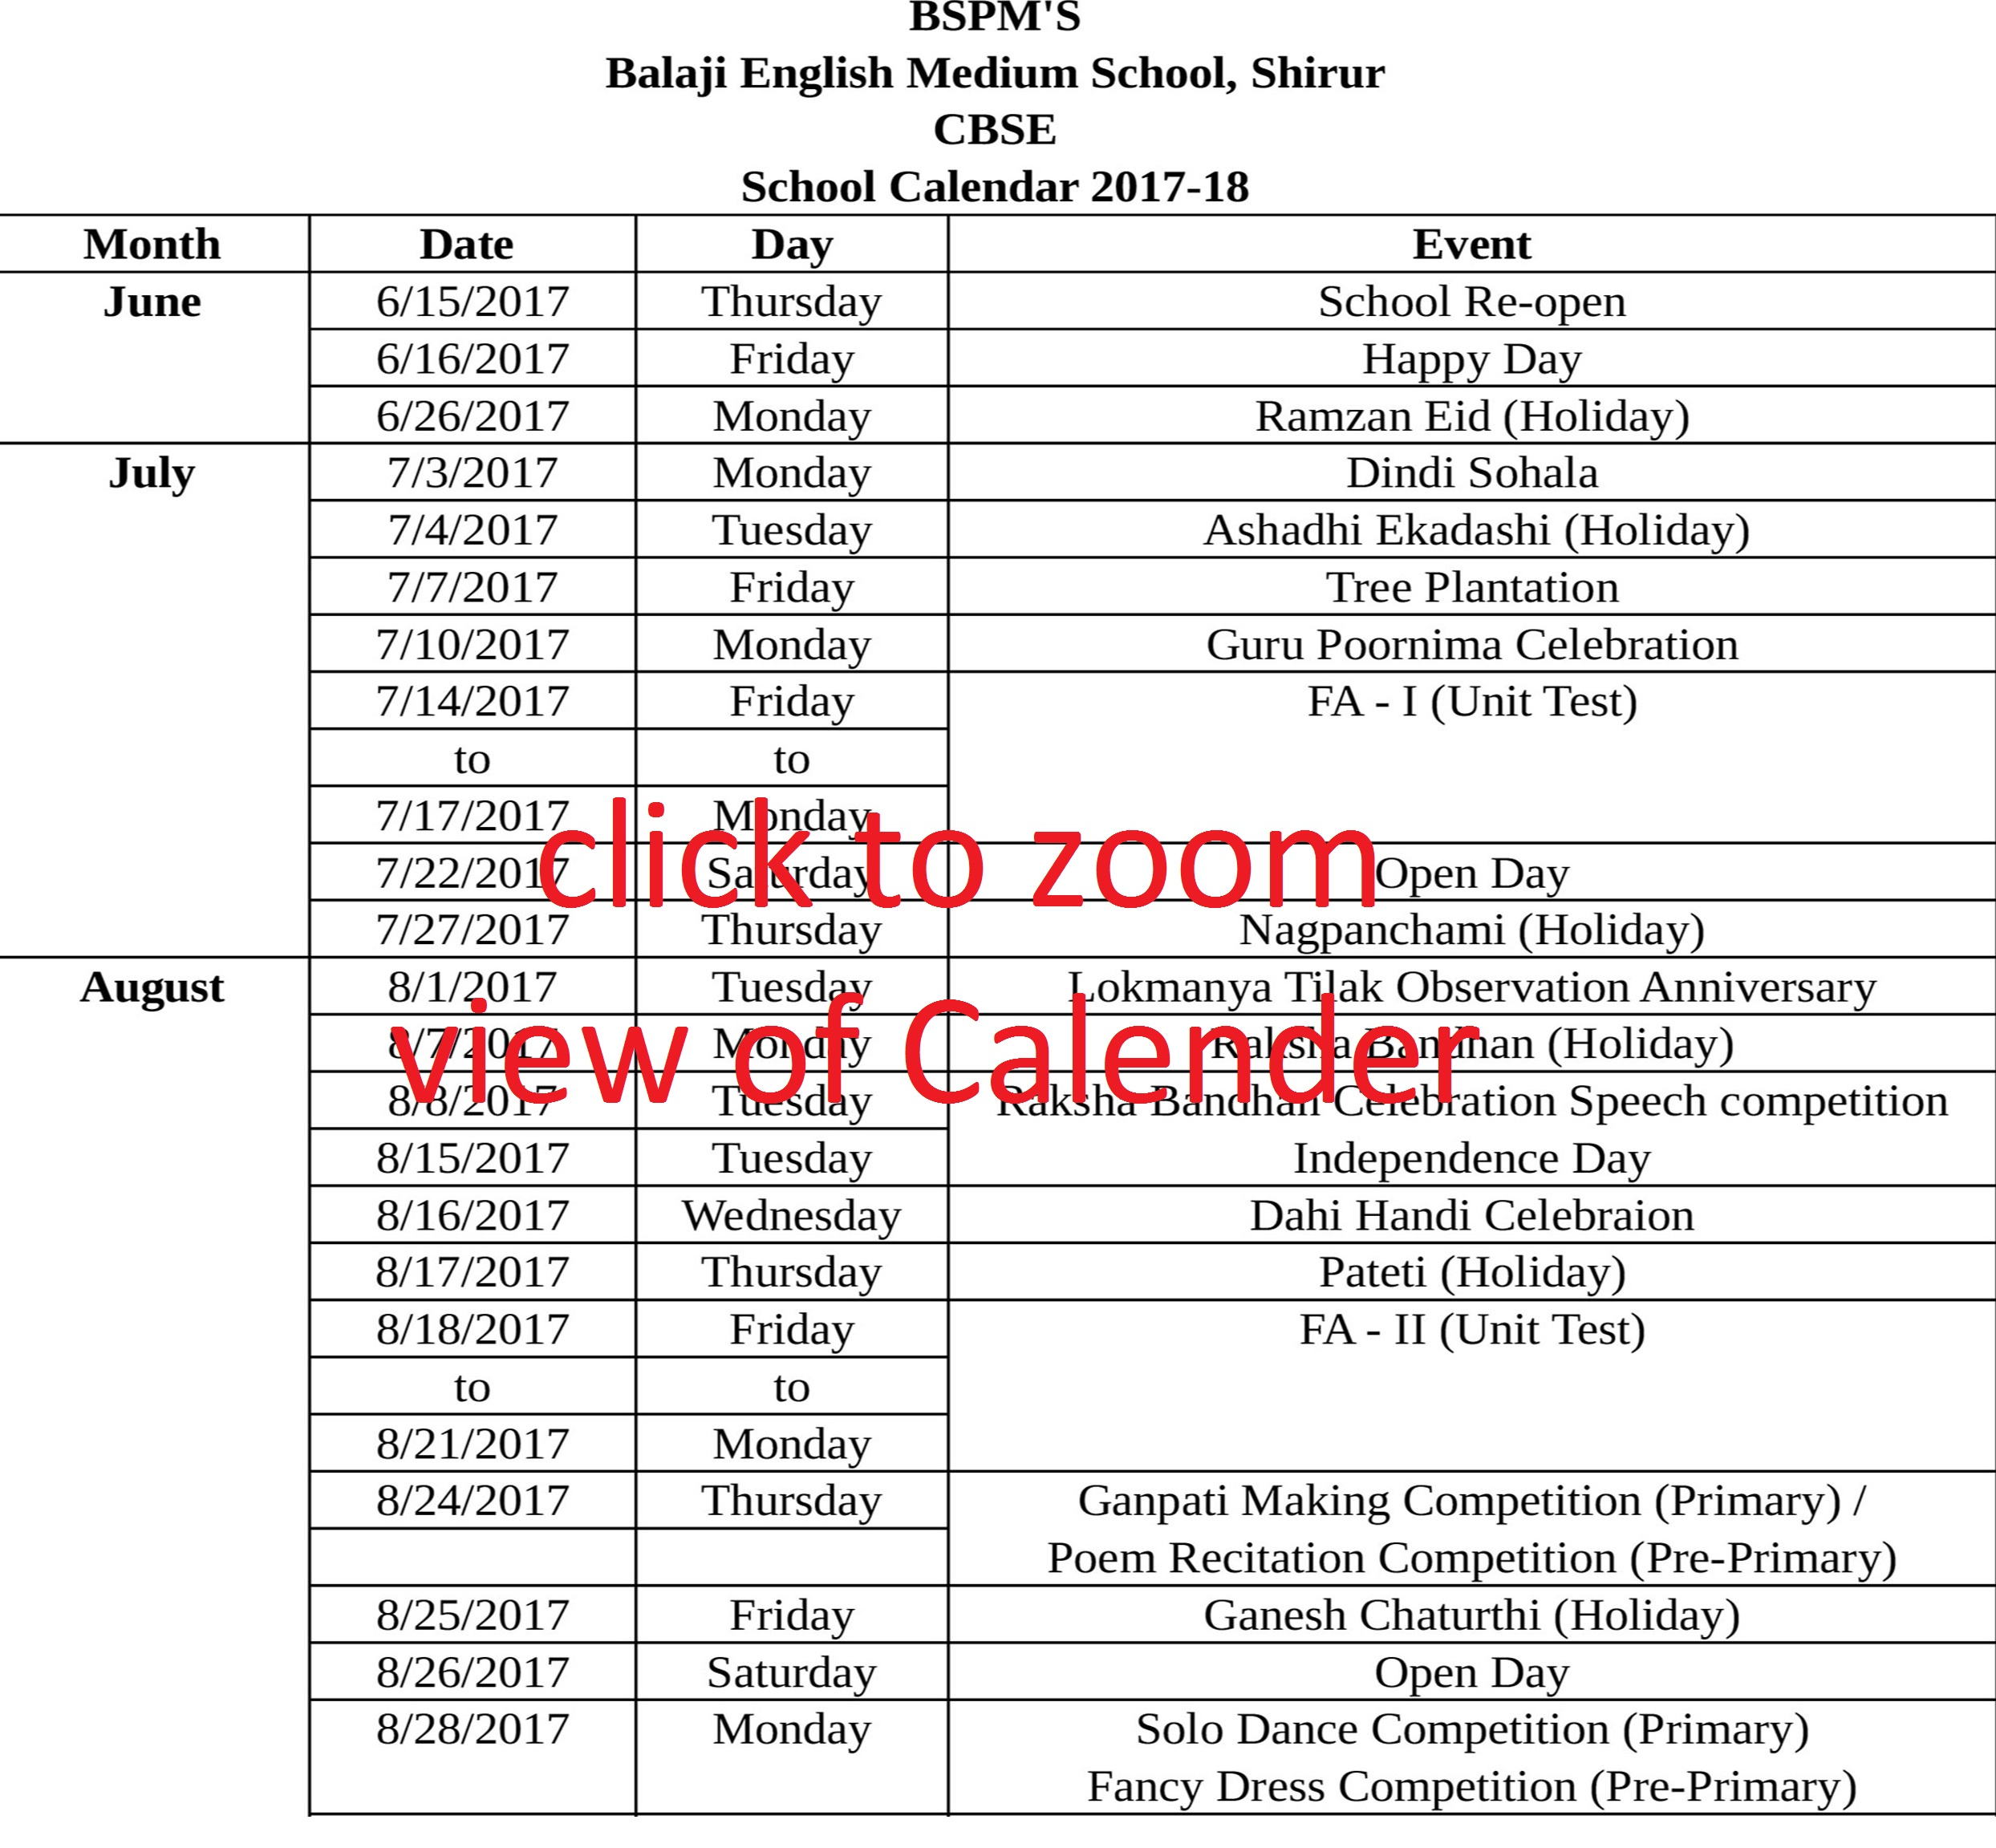 Balaji Shikshan Prasarak Mandal's English Medium School Calendar